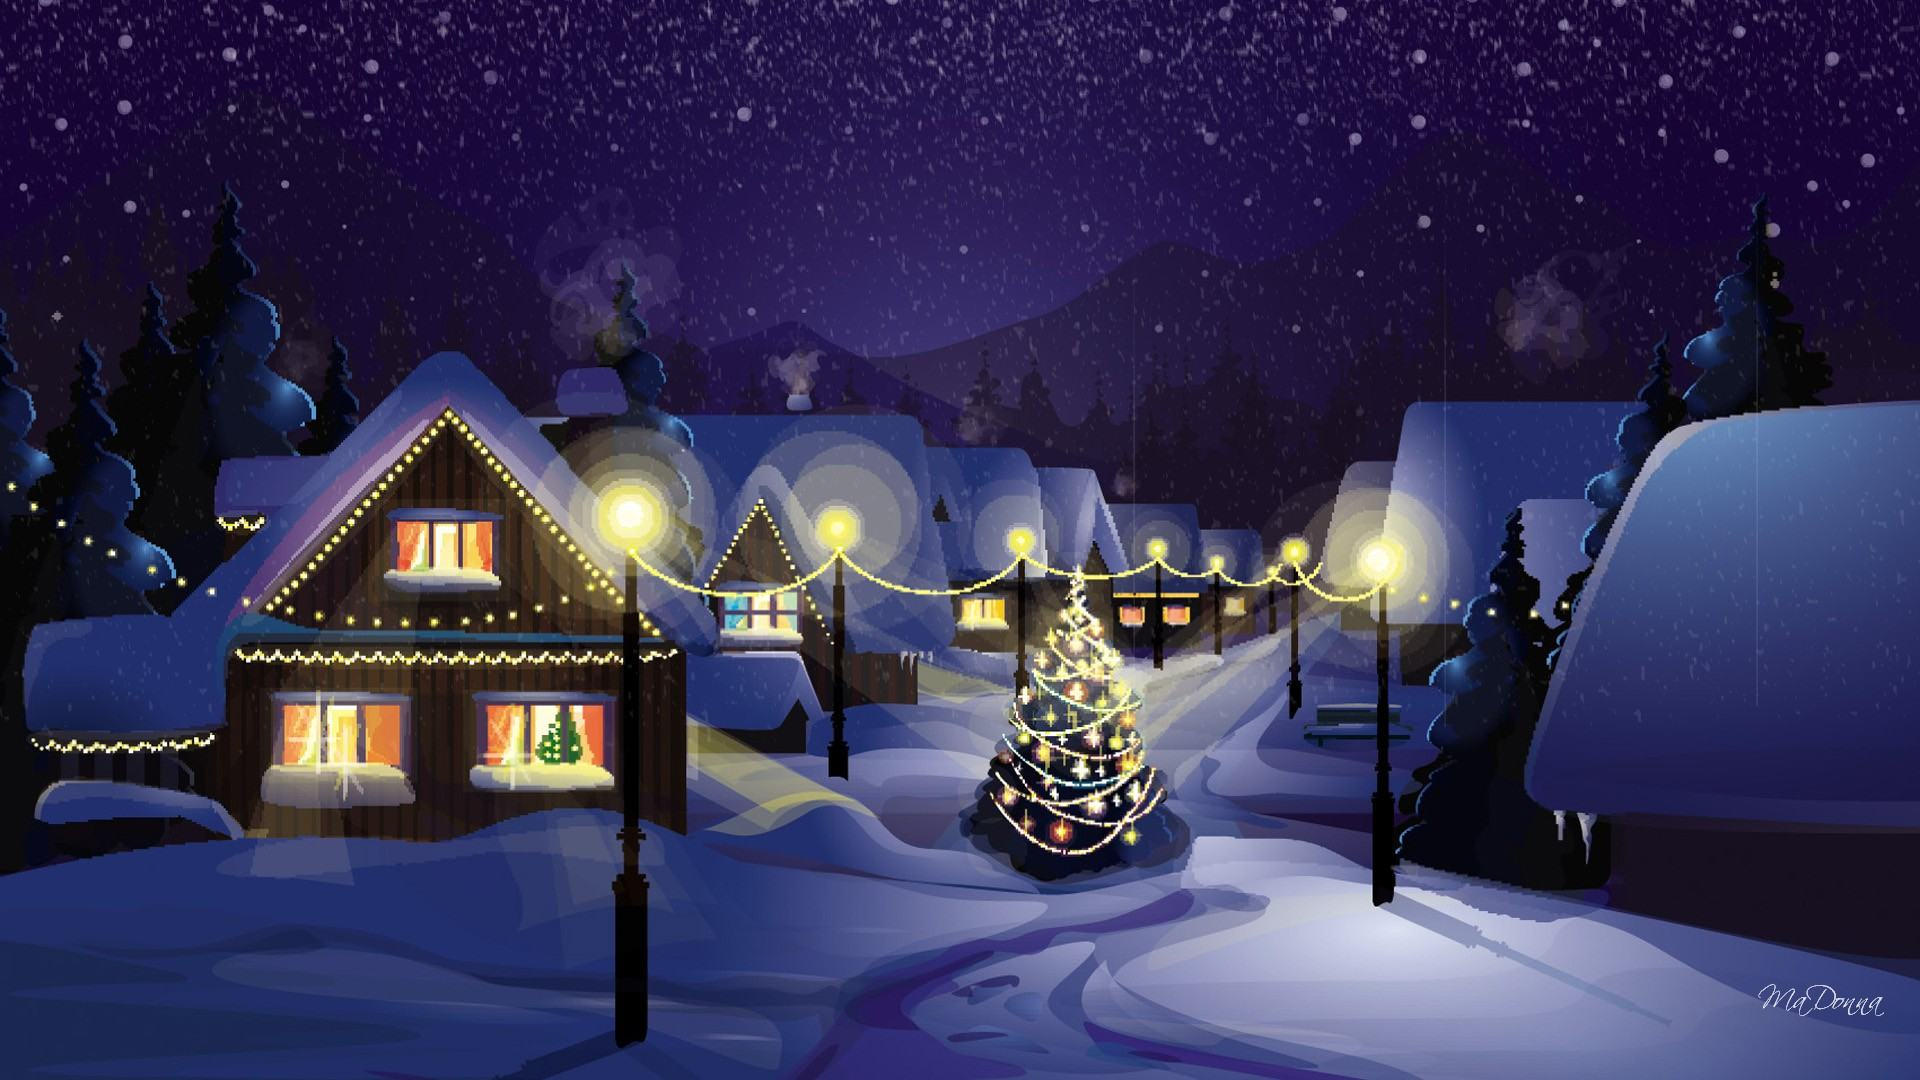 Download Christmas Village Wallpapers in HD from 2015 1920x1080